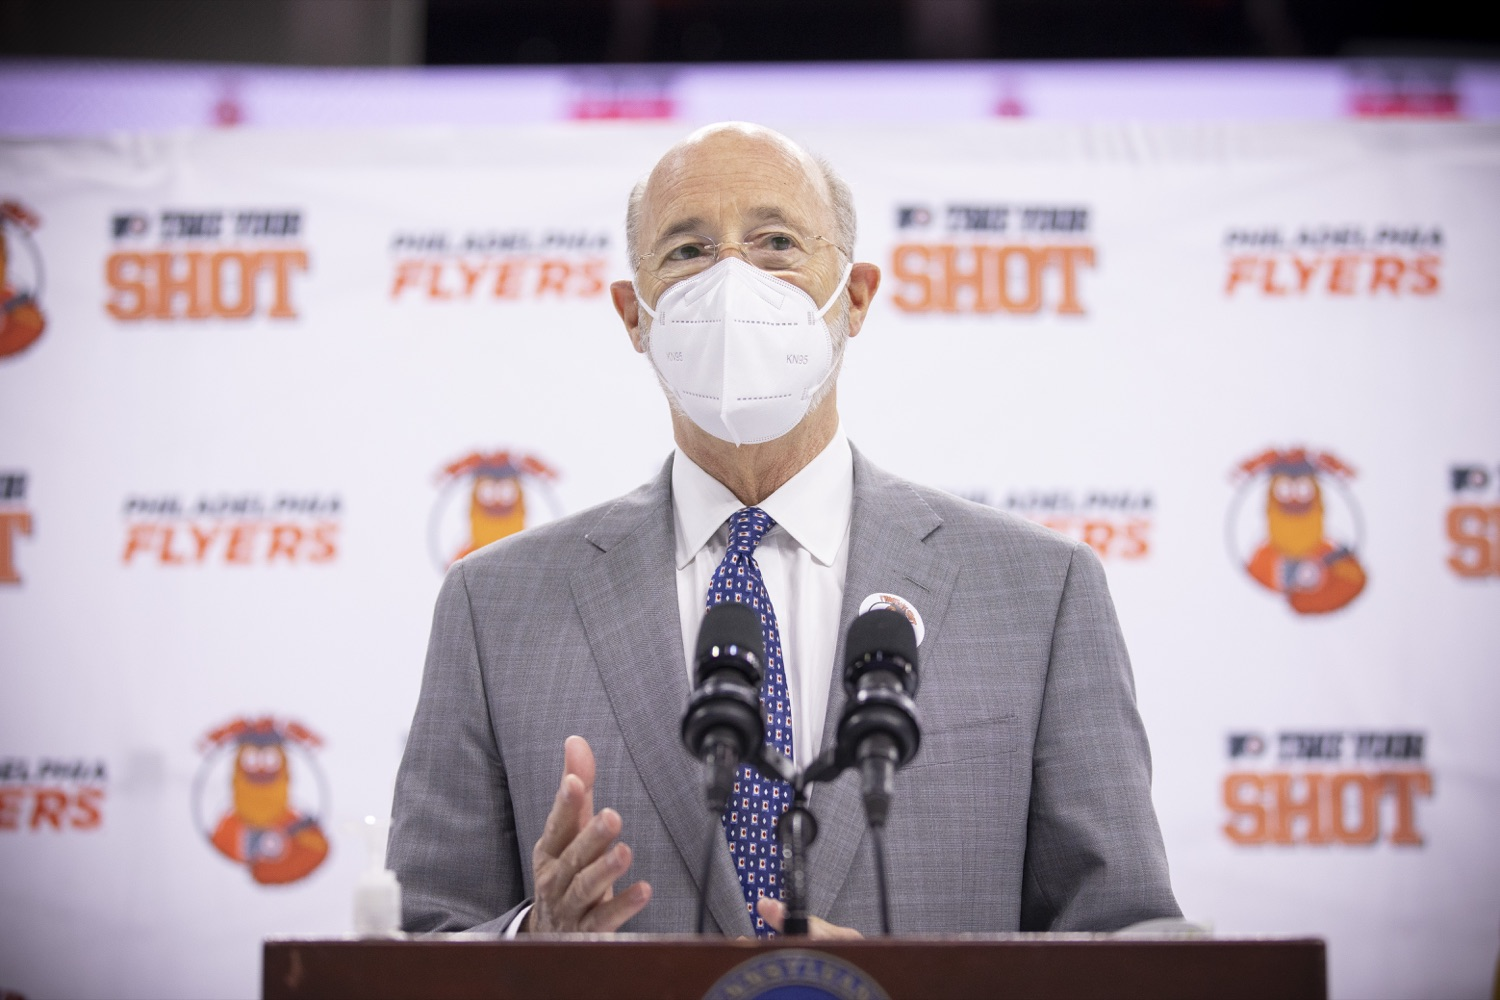 """<a href=""""https://filesource.wostreaming.net/commonwealthofpa/photo/18727_gov_vaccines_dz_017.jpg"""" target=""""_blank"""">⇣Download Photo<br></a>Pennsylvania Governor Tom Wolf speaking with the press.   Governor Tom Wolf today visited the Philadelphia Flyers organization at the Wells Fargo Center in Philadelphia to discuss COVID-19 vaccine efforts in Pennsylvania. The Flyers recently launched a comprehensive COVID-19 vaccine campaign, Take Your Shot, encouraging Pennsylvanians to get vaccinated.  Philadelphia, PA  MAY 3, 2021"""